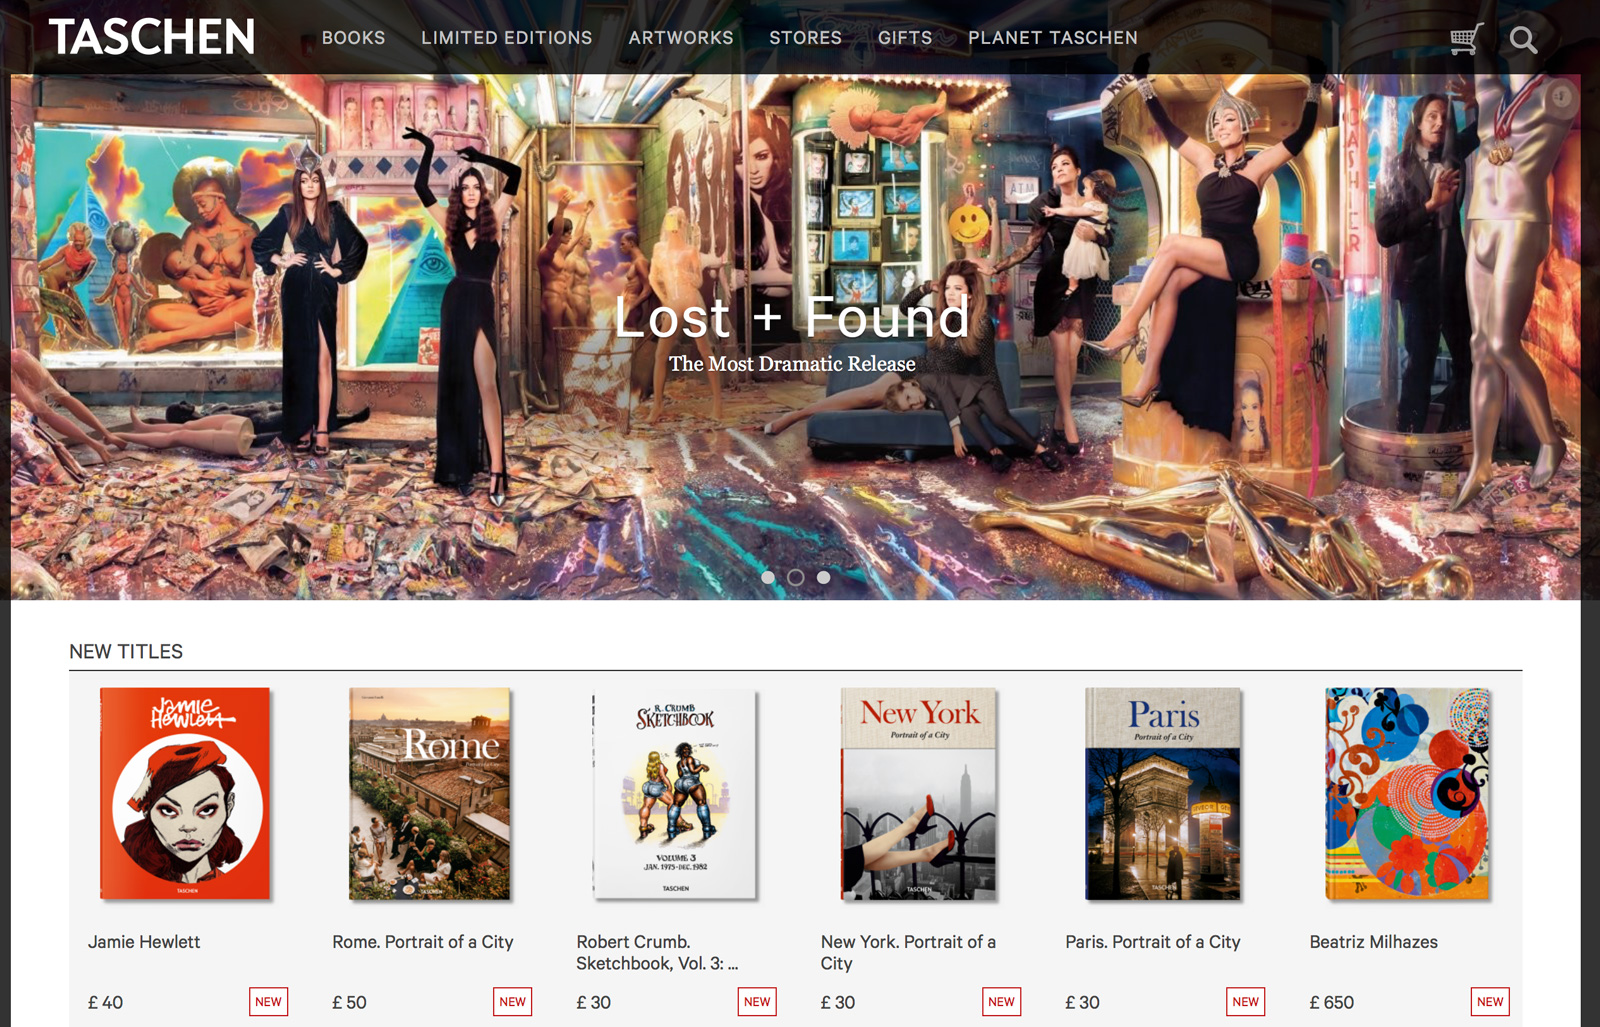 Taschen's beautiful website now boasts a full Supadu eCommerce cart solution, with Ingram distribution and fulfillment